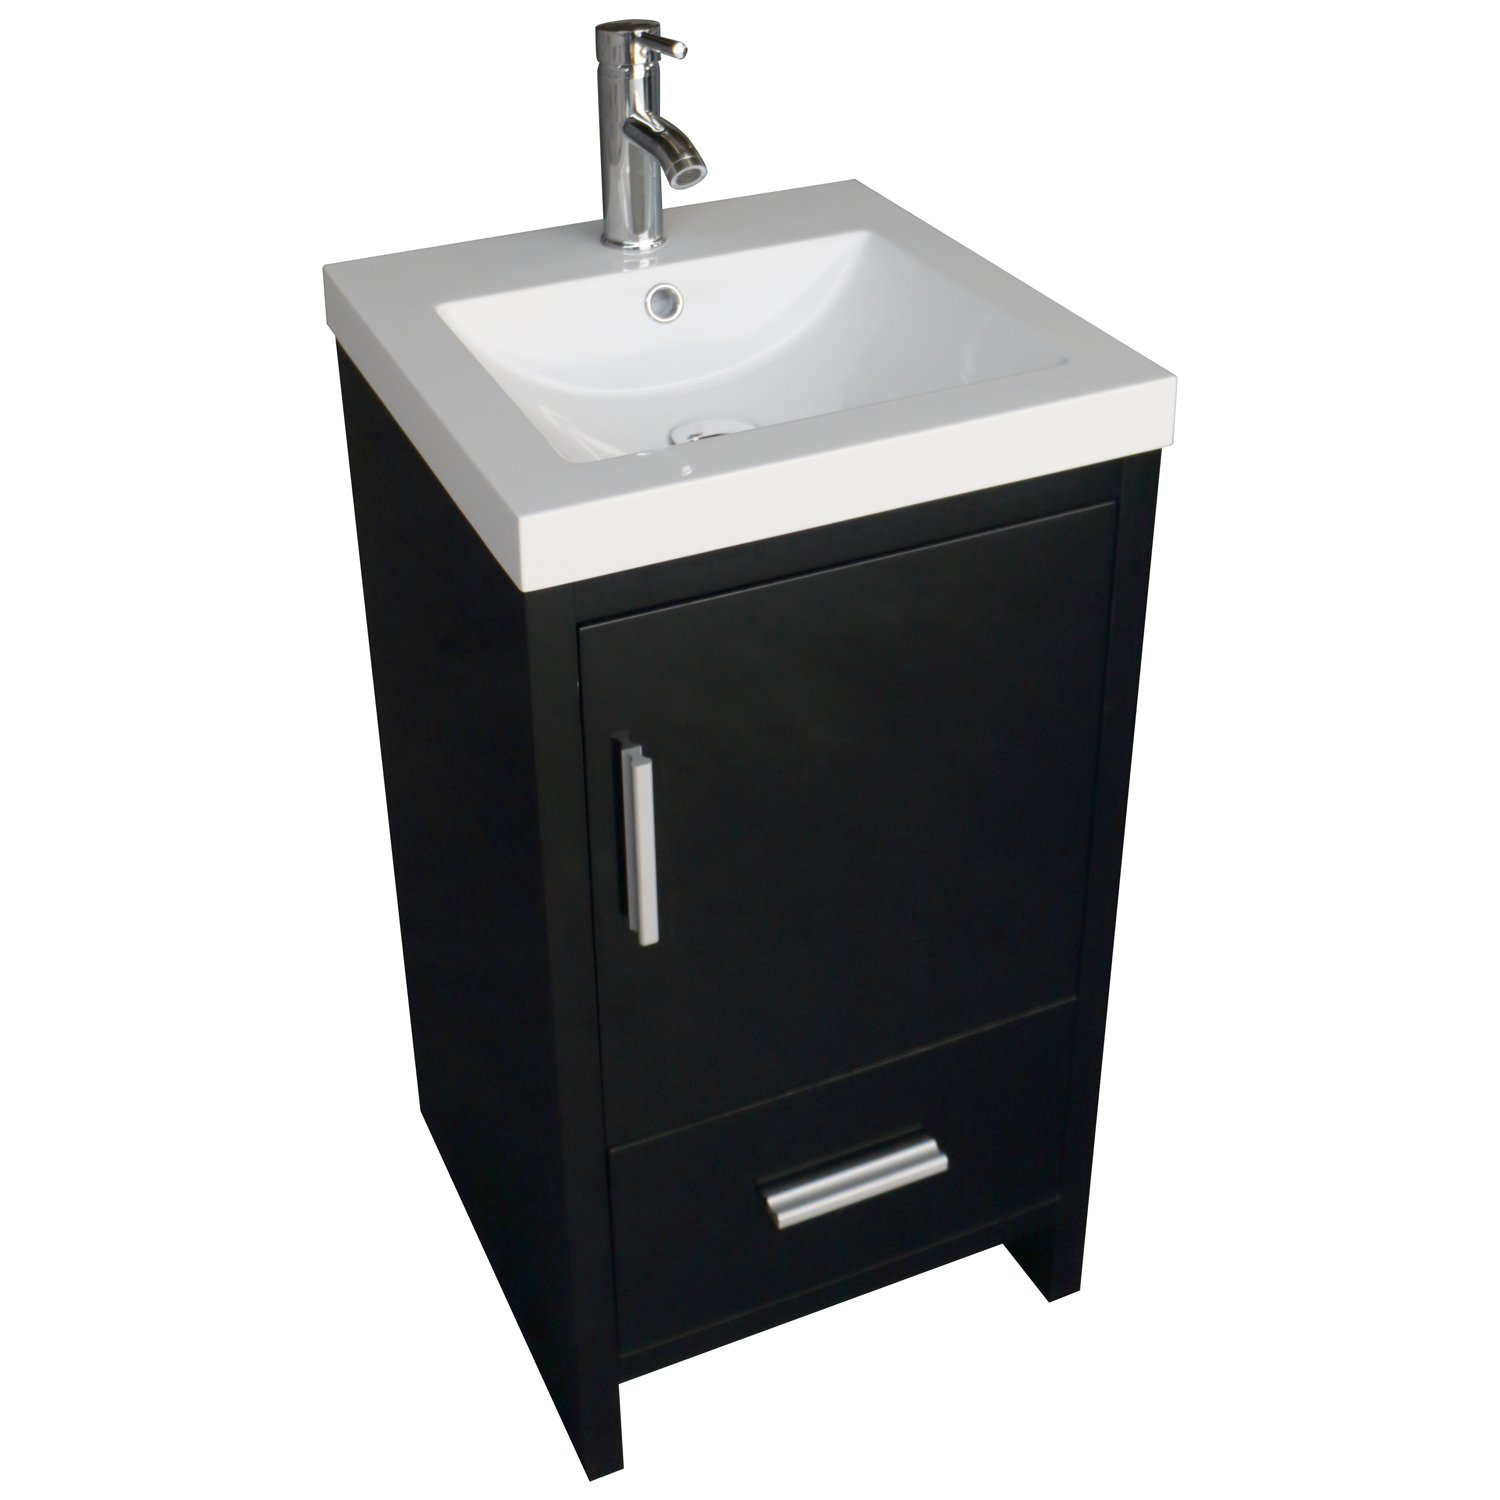 Amazon com walcut 18inch black bathroom vanity mdf wood cabinet resin counter top vessel sink set with faucet and pop up drain kitchen dining